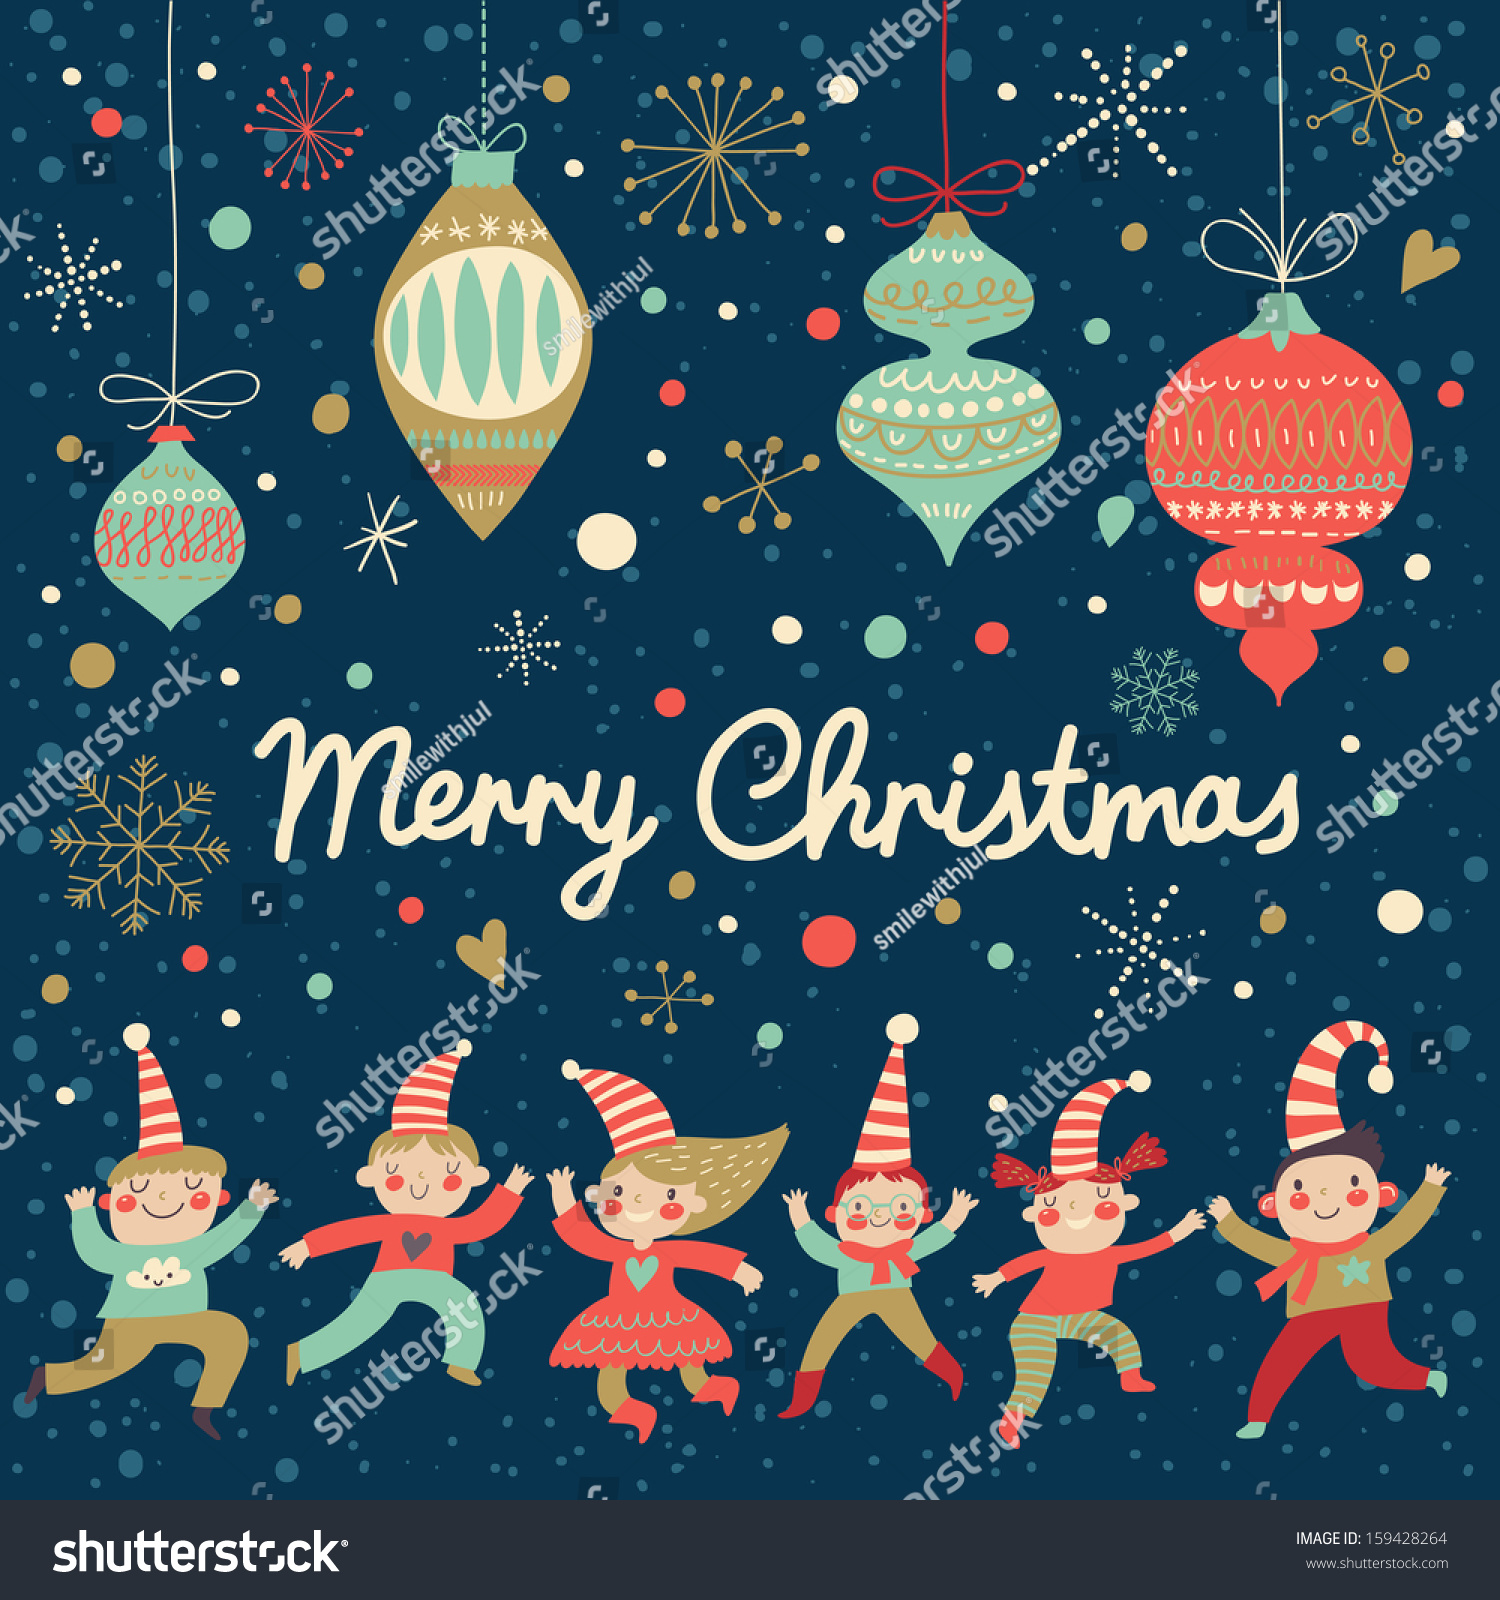 Vintage Merry Christmas Card Vector Funny Stock Vector (Royalty Free ...